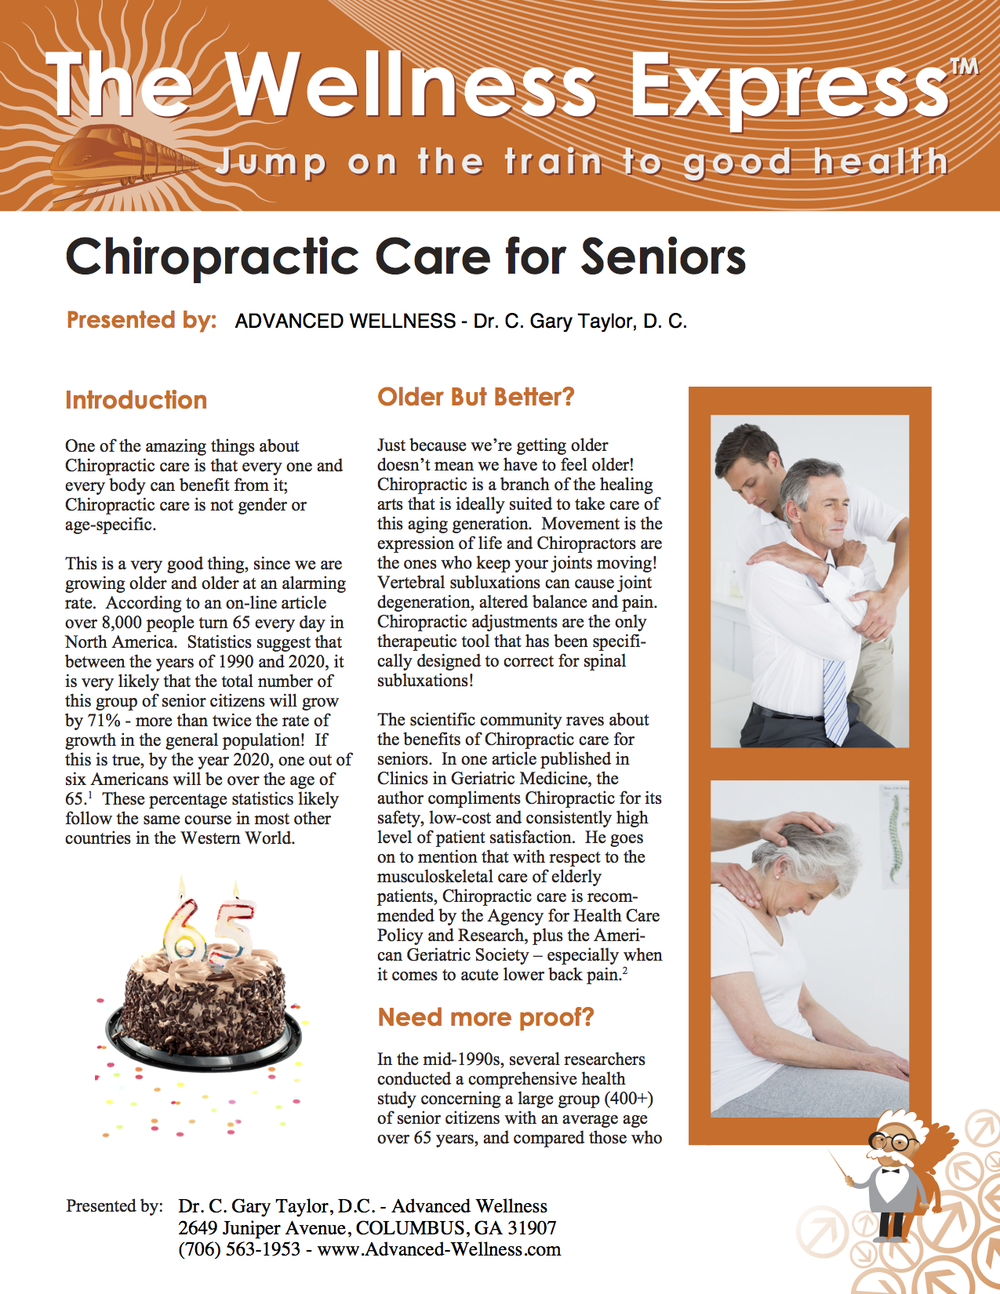 Weekly Newsletter: Chiropractic Care for Seniors